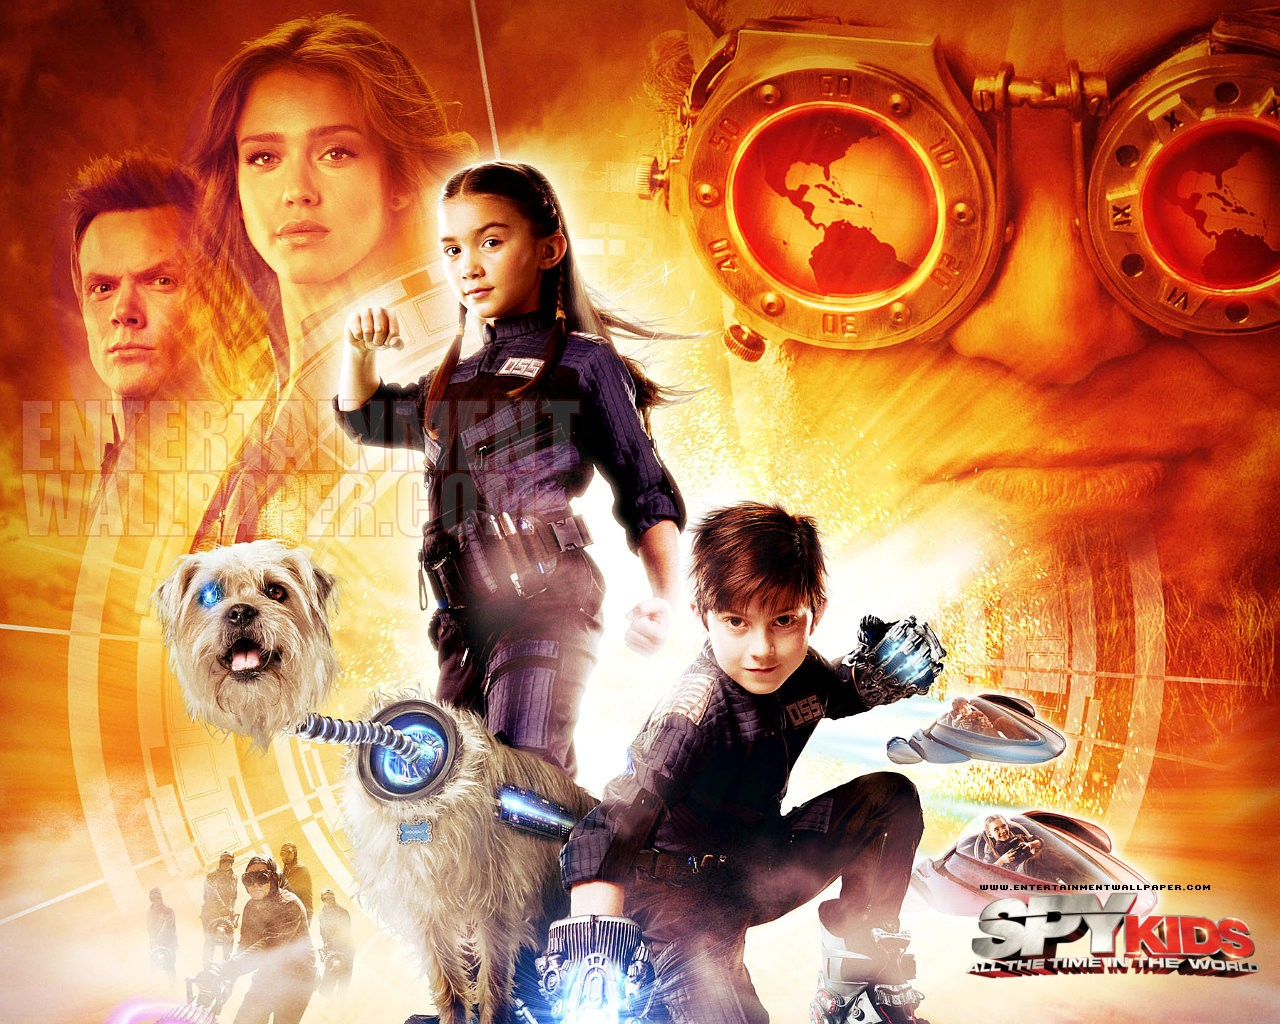 Spy Kids 4 All the Time in the World Wallpaper   10027363 1280x1024 1280x1024